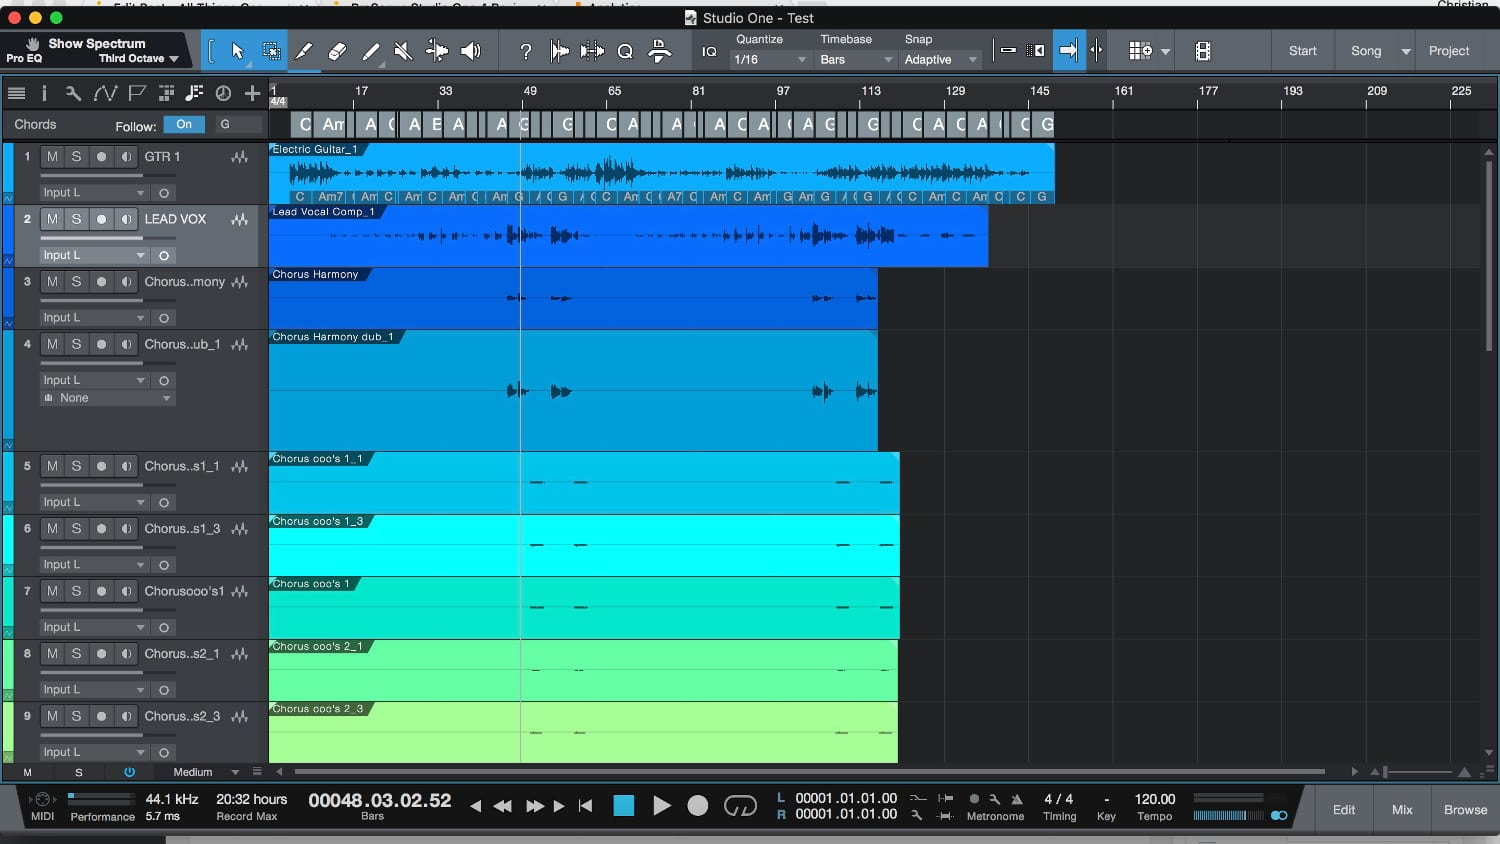 PreSonus Studio One 4 Edit